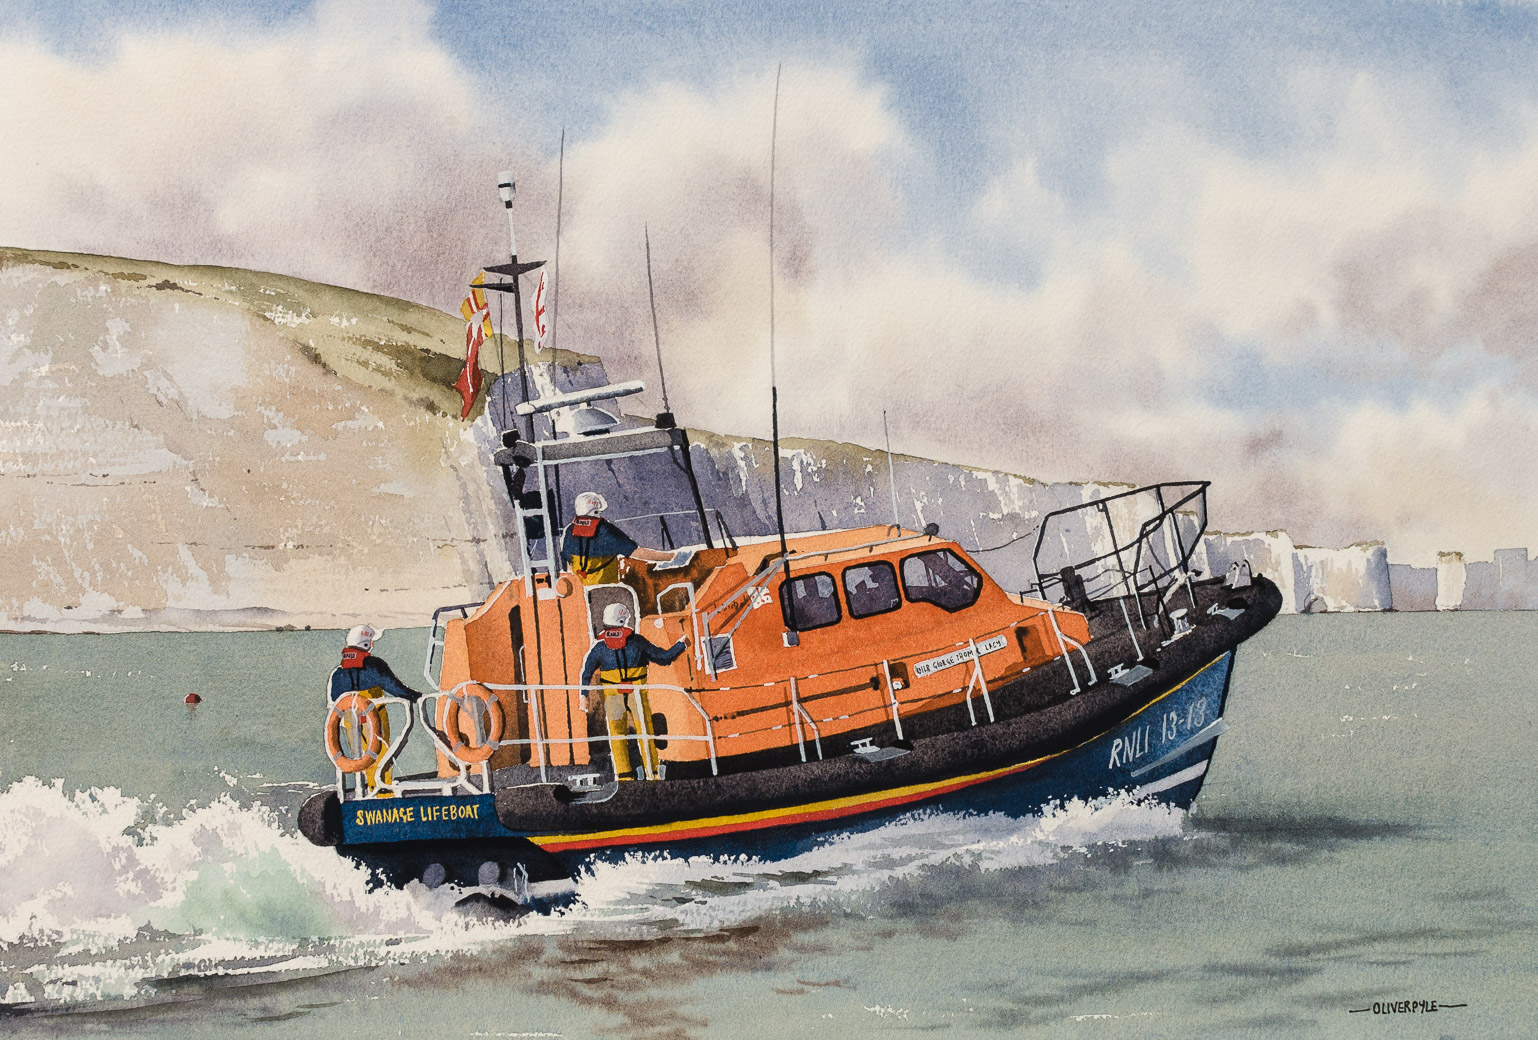 Swanage Lifeboat off Ballard Point